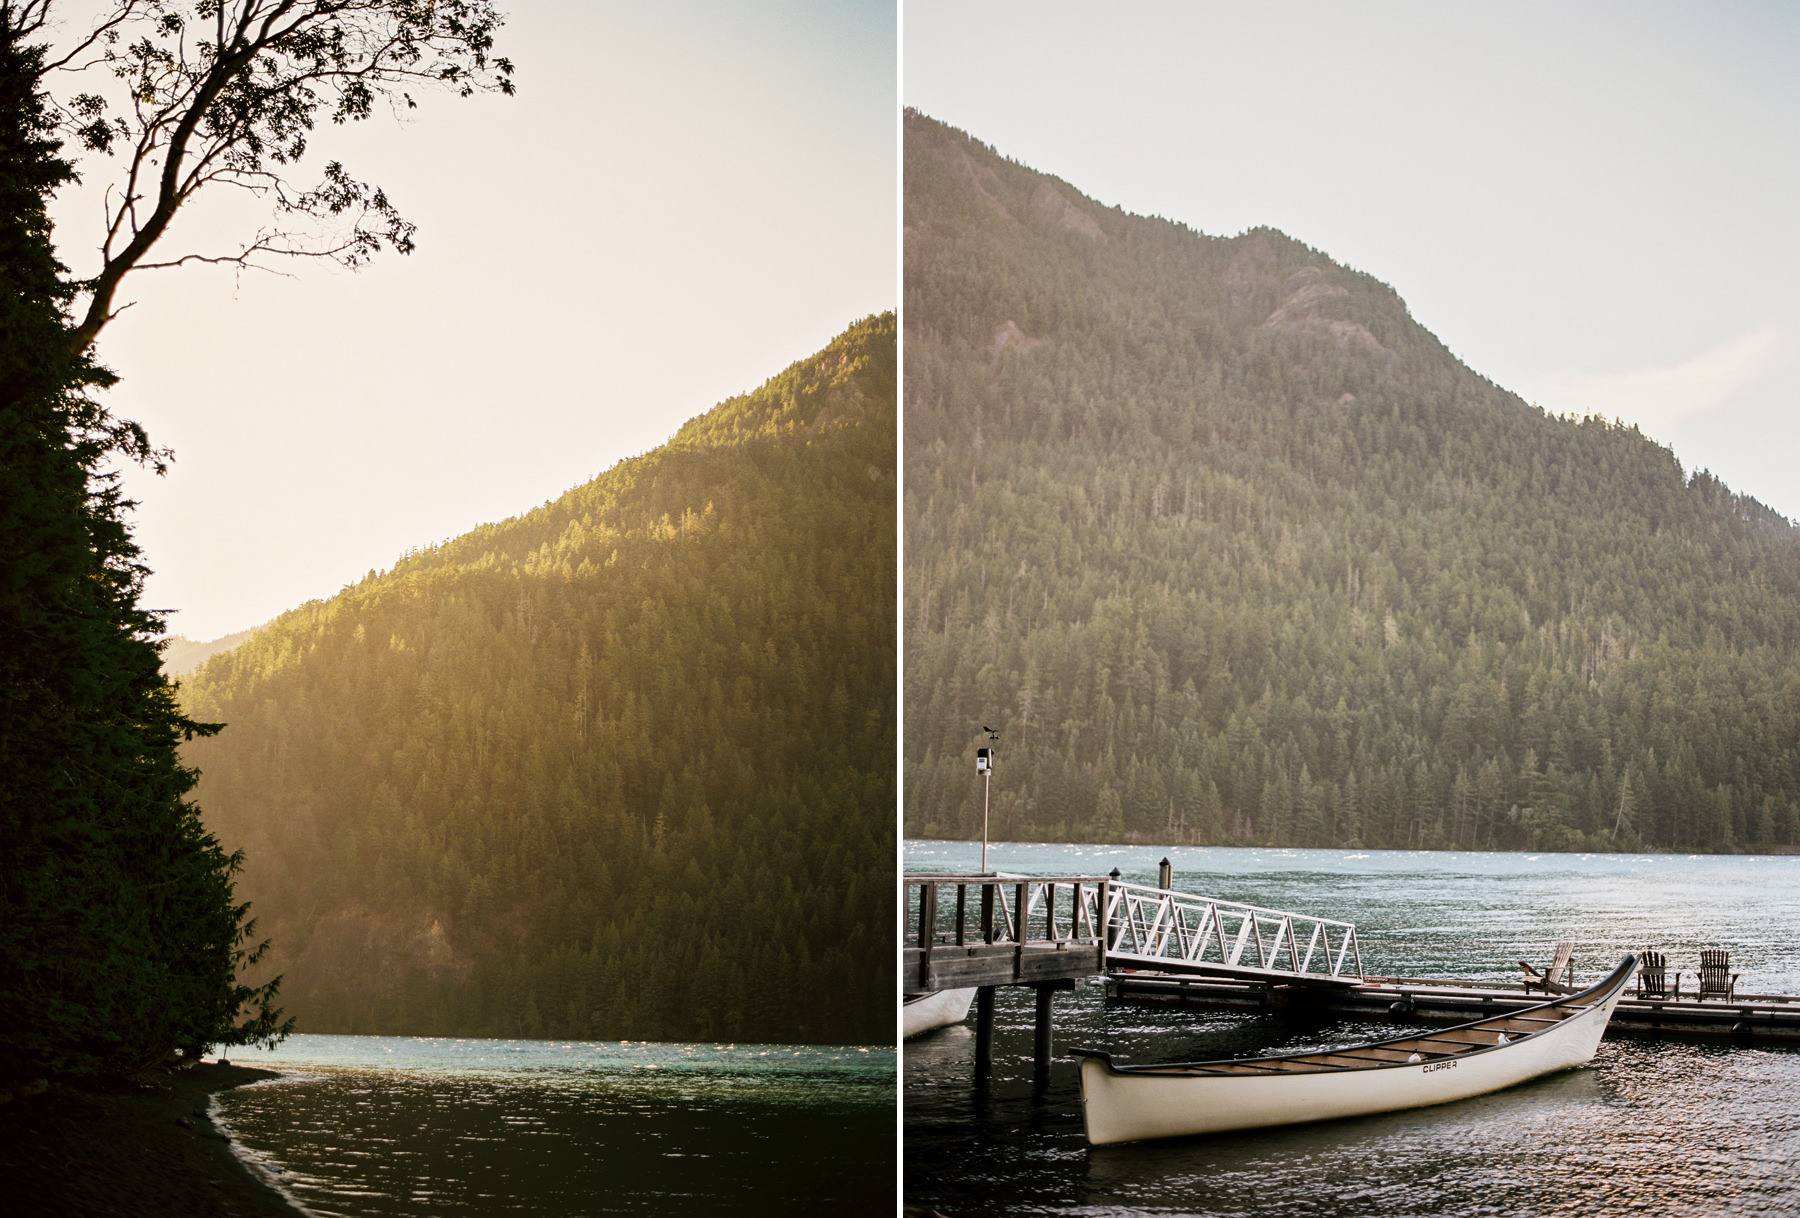 186-bride-and-groom-in-a-canoe-across-lake-crescent-by-nature-bridge.jpg